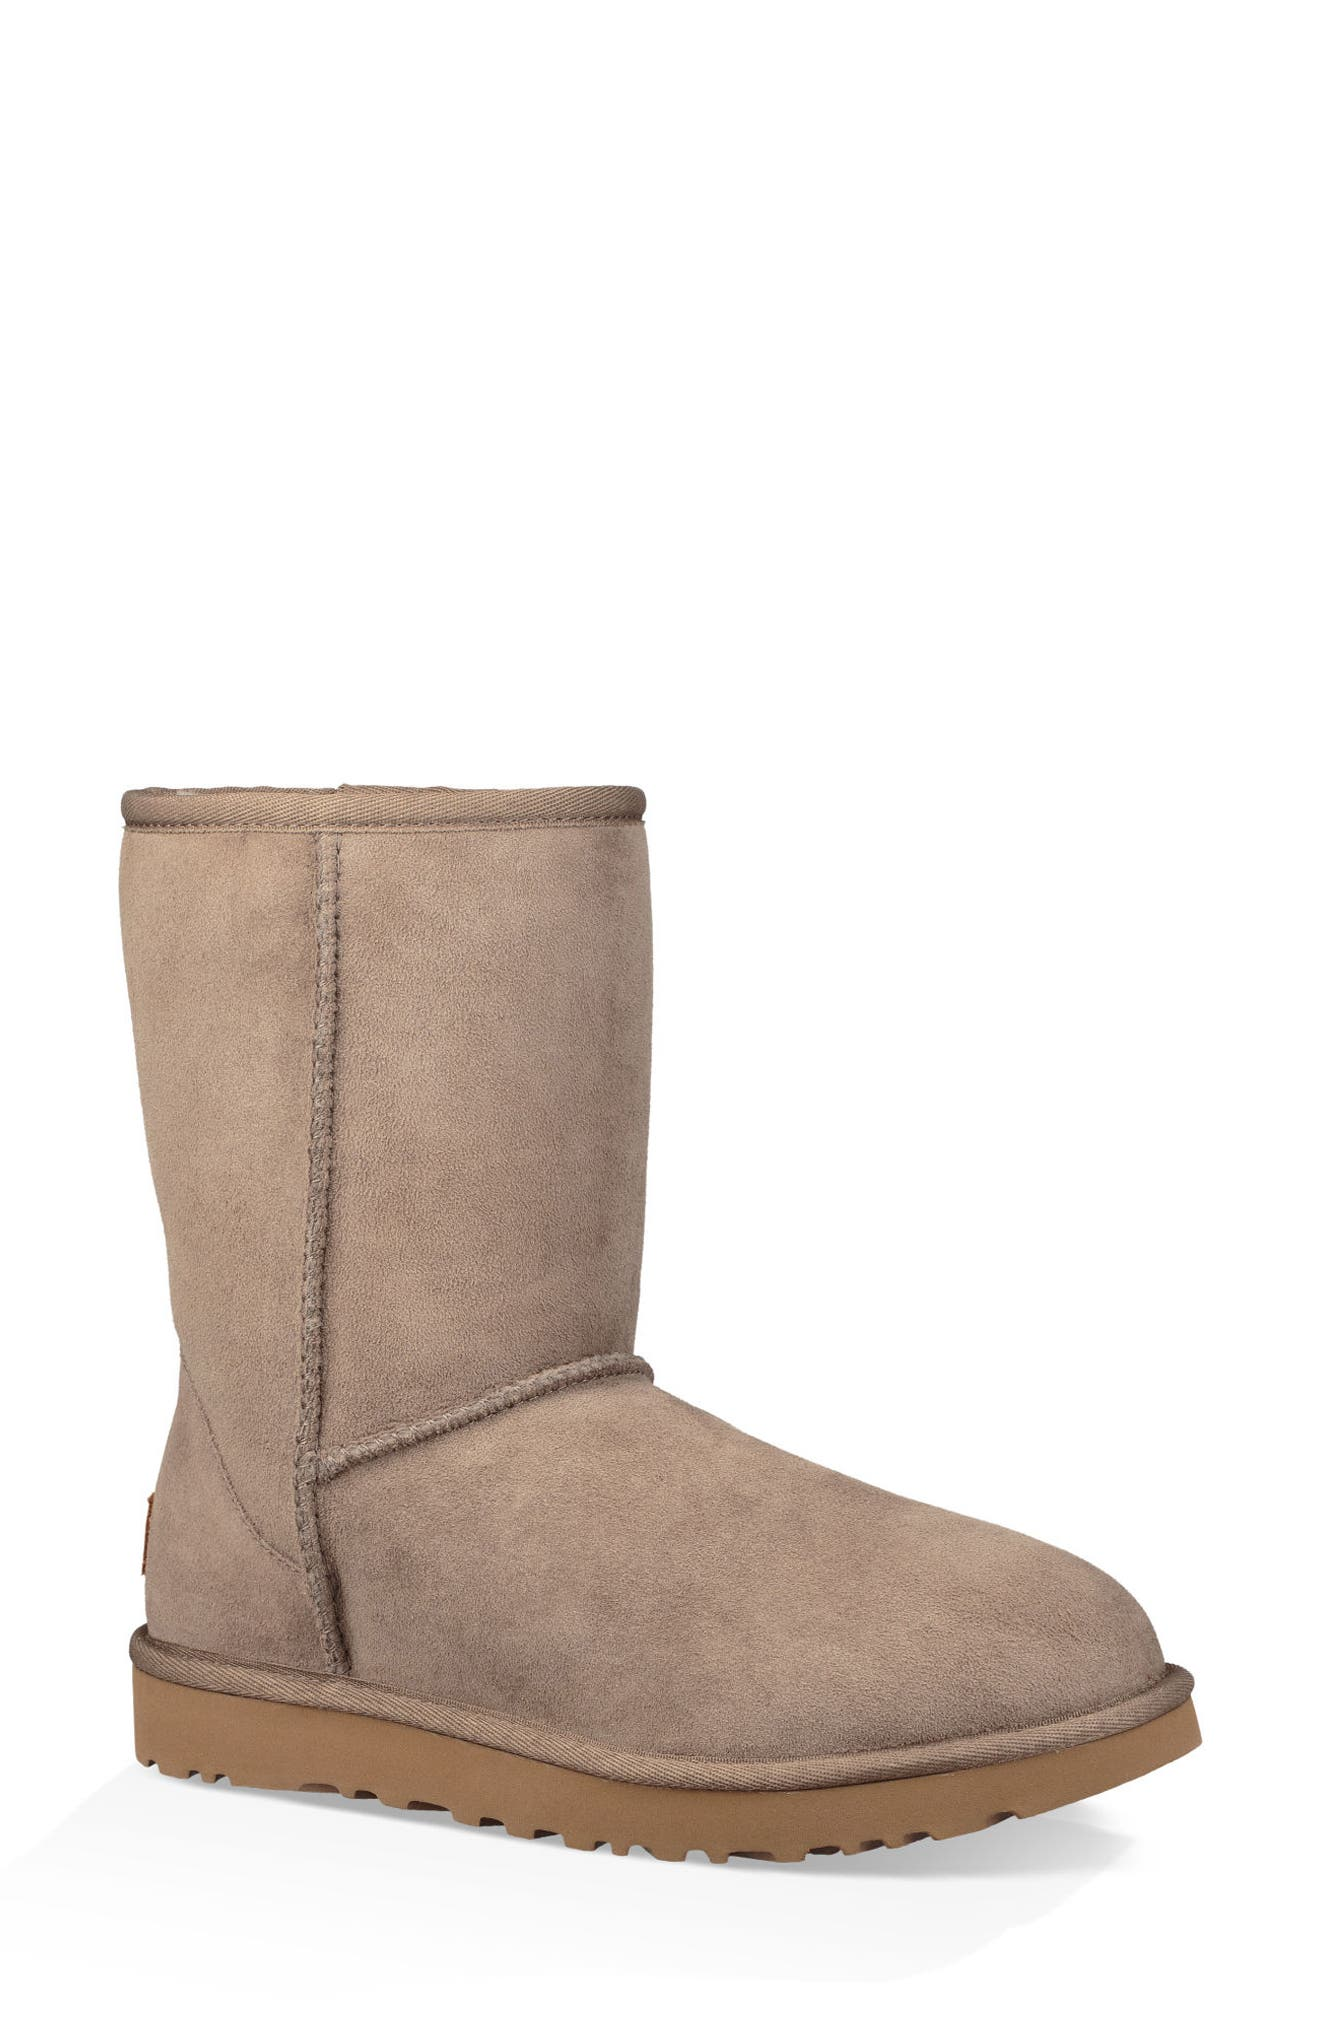 'Classic II' Genuine Shearling Lined Short Boot,                             Main thumbnail 1, color,                             BRINDLE SUEDE